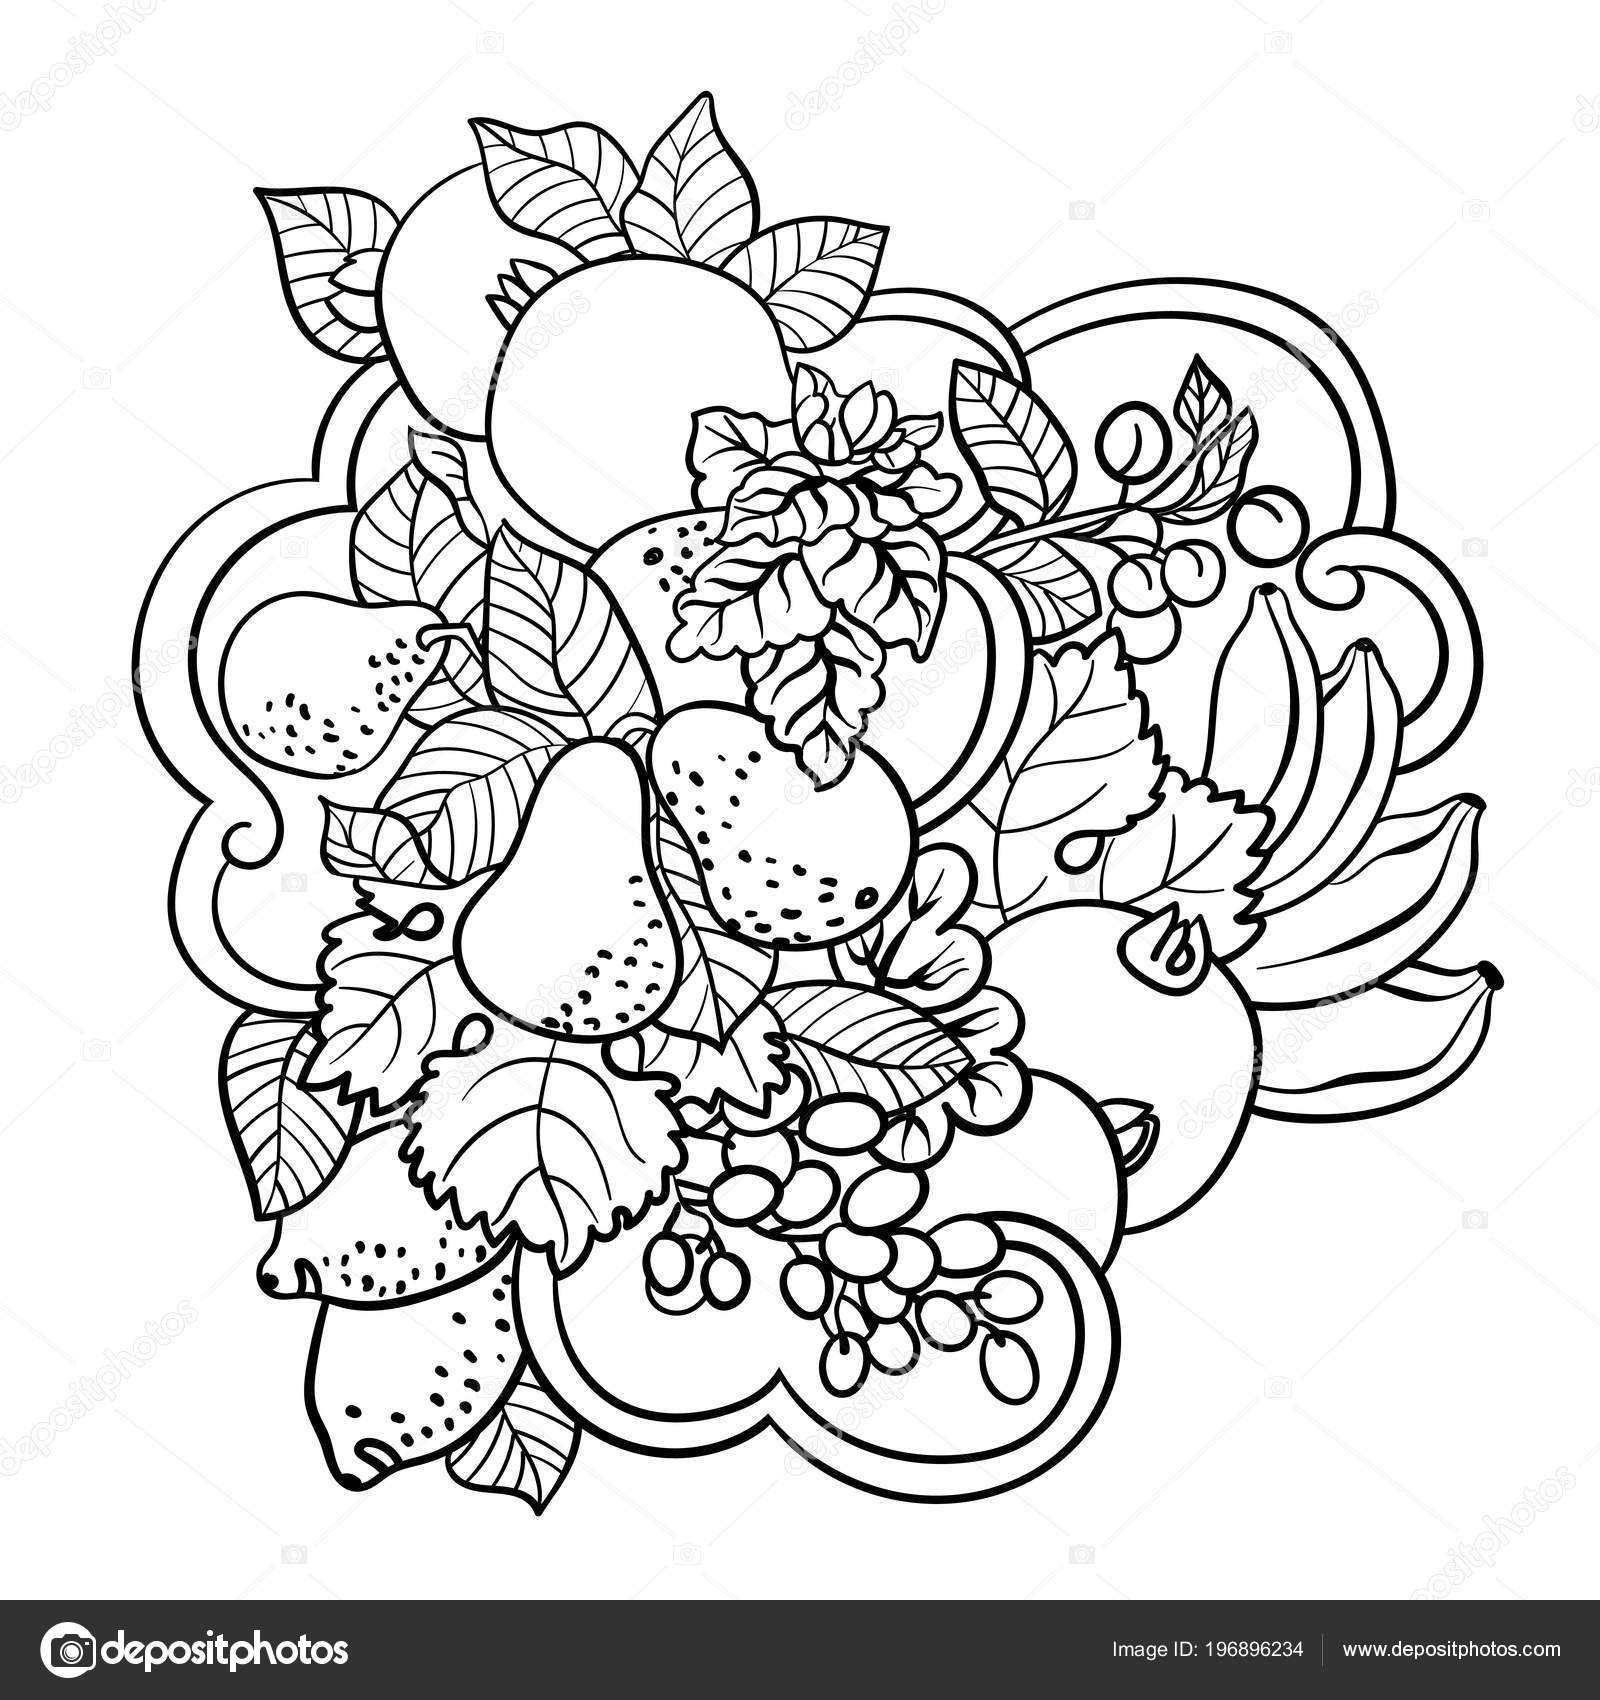 Coloring Pages Fruits Abstract Waves Children Adult People Made ...